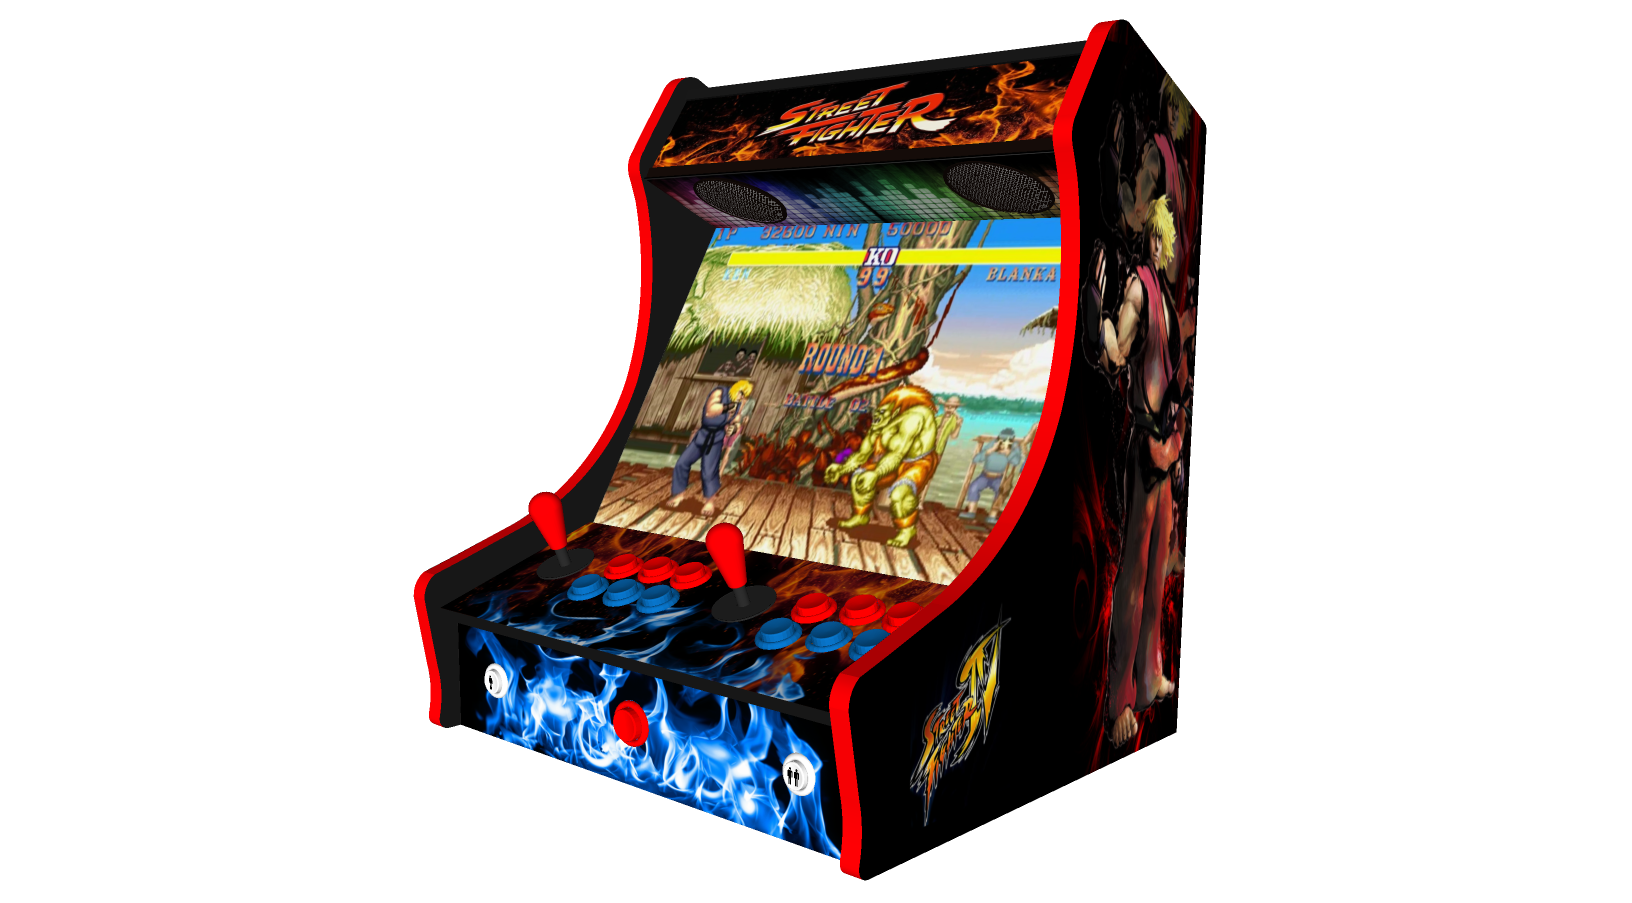 Retro Street Fighter Arcade Machine with 15000 Games, 24 Inch Screen